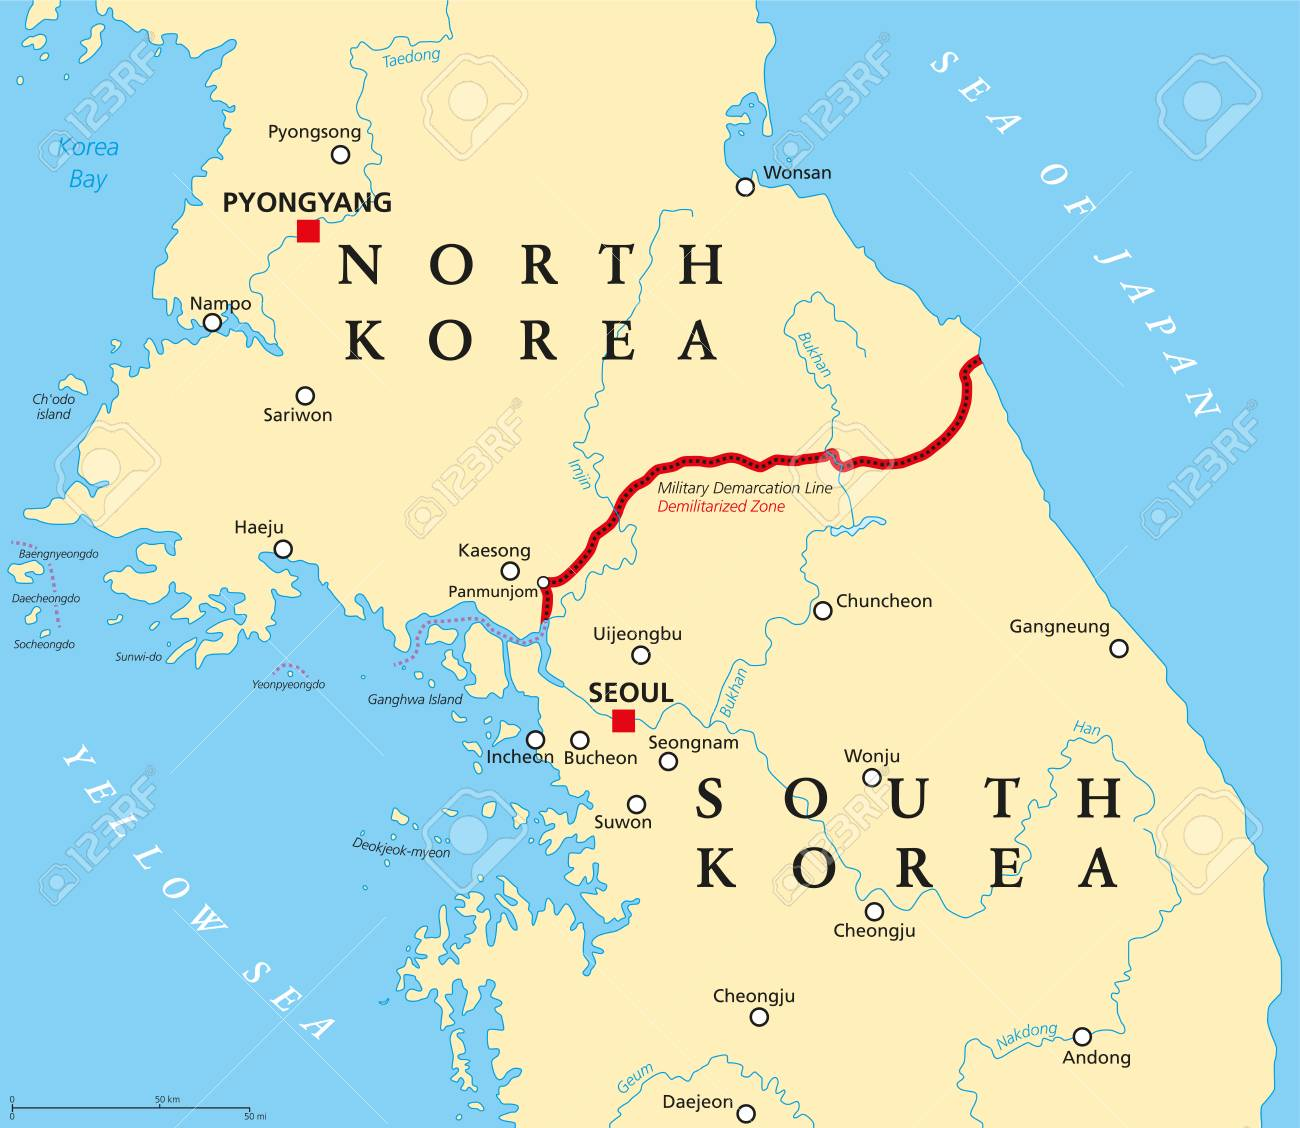 Korean Peninsula, Demilitarized Zone, political map. North and.. on china map, formosa map, usa map, camp humphreys map, wwii map, rwanda map, hong kong map, persia map, asia map, seoul map, euro countries map, korean peninsula map, korean war map, ireland map, united states map, japan map, iran map, europe map, russia map,